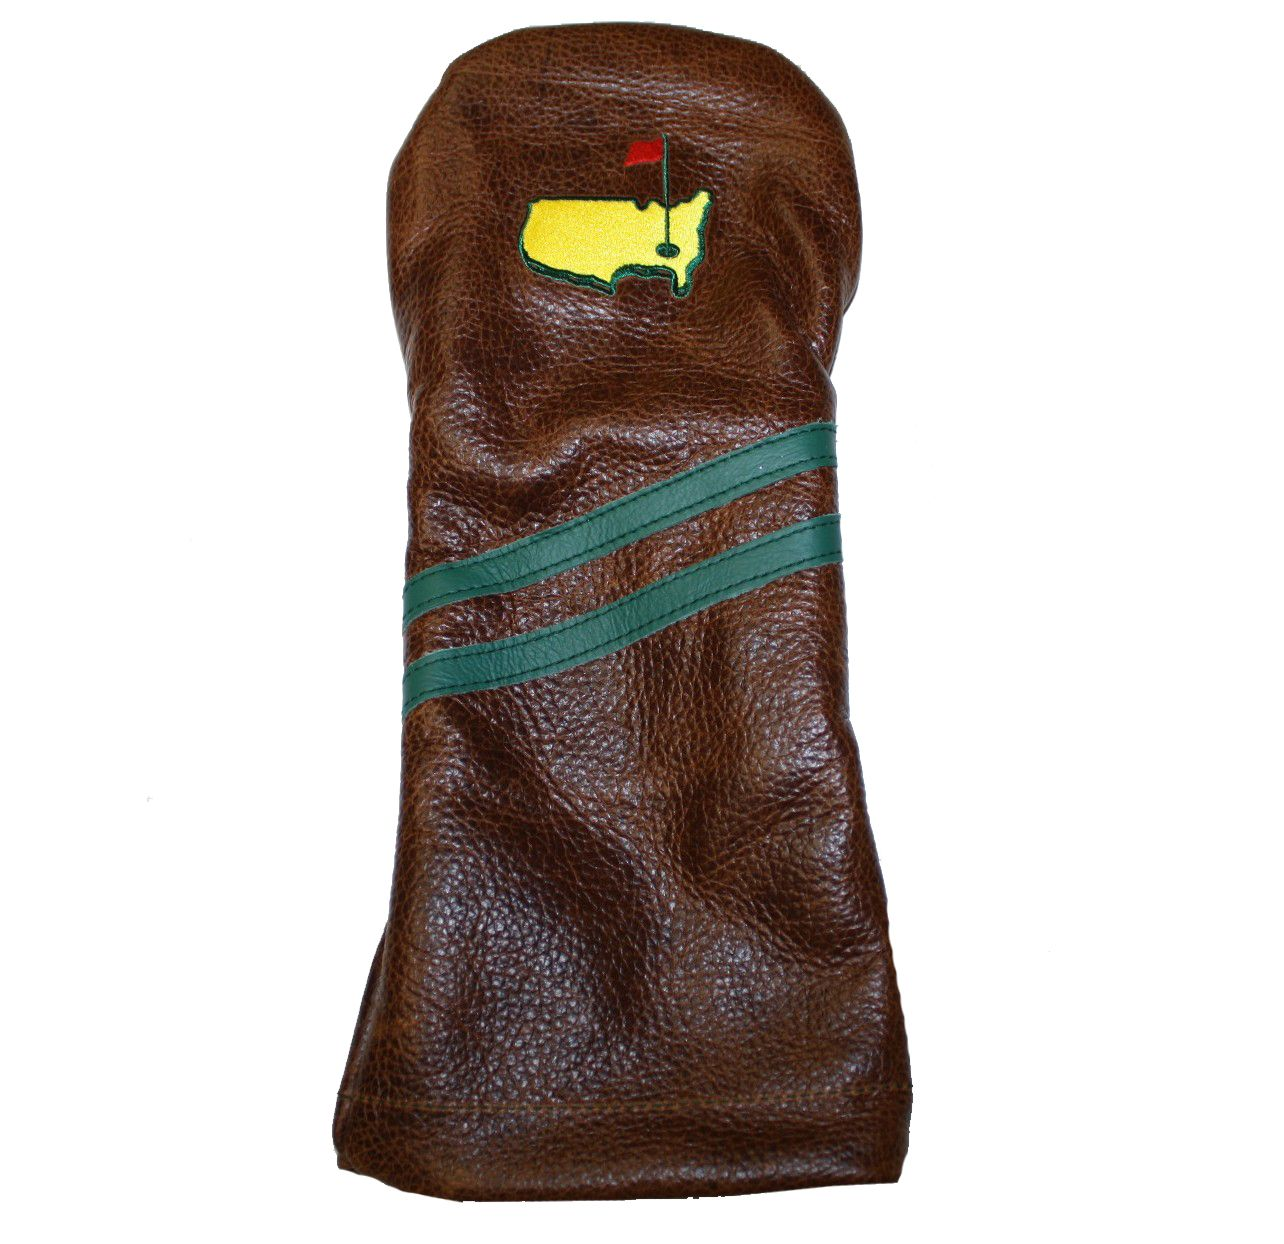 lot detail masters members leather driver head cover